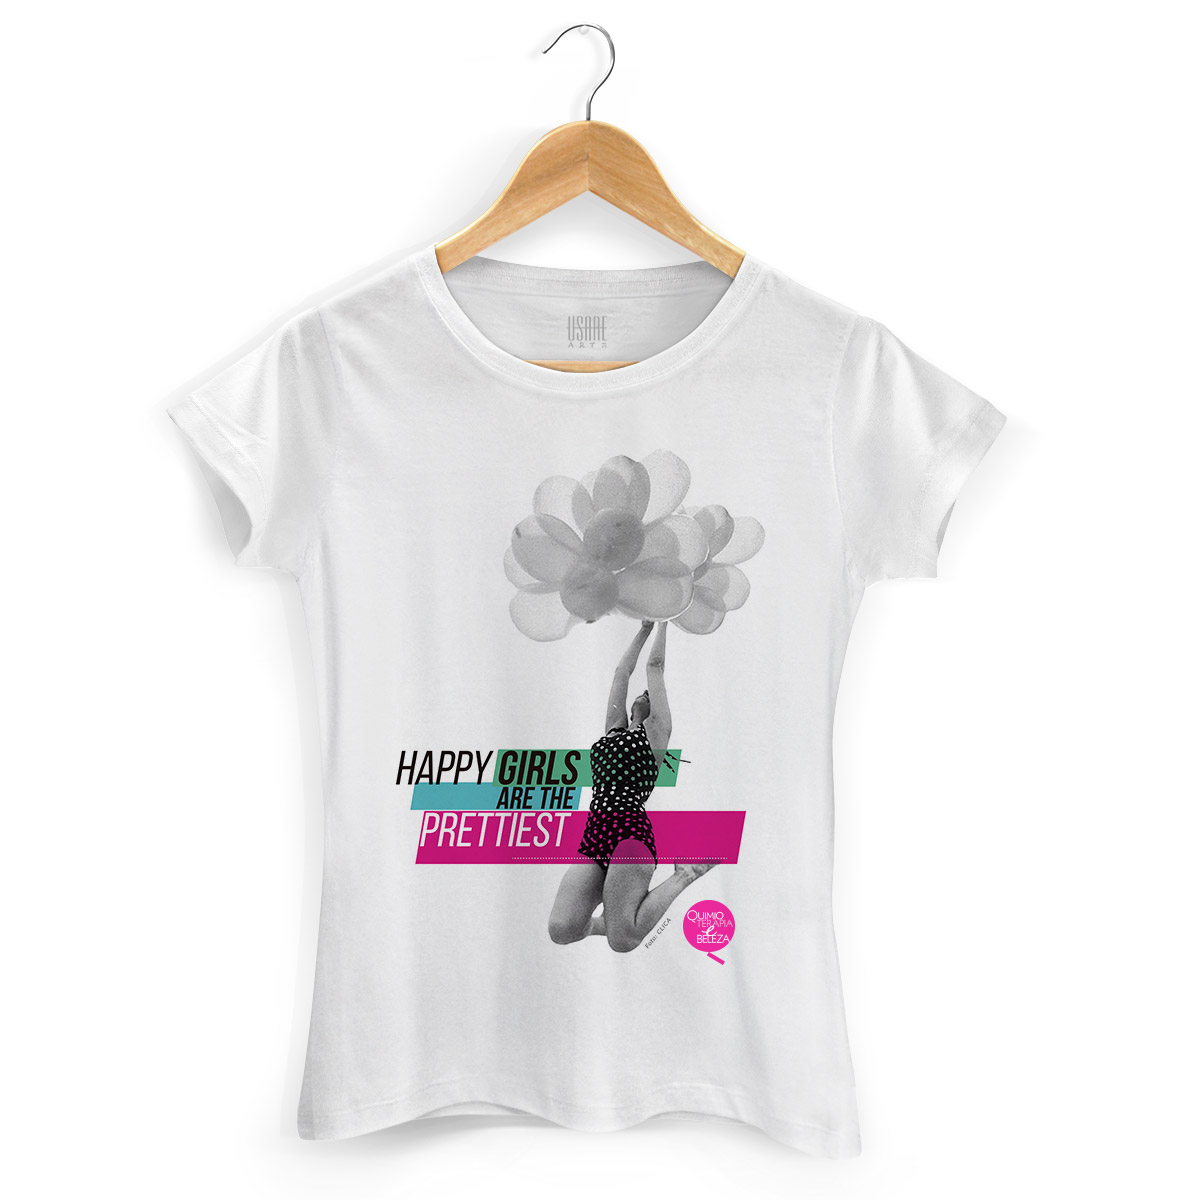 Camiseta Feminina QeB Happy Girls